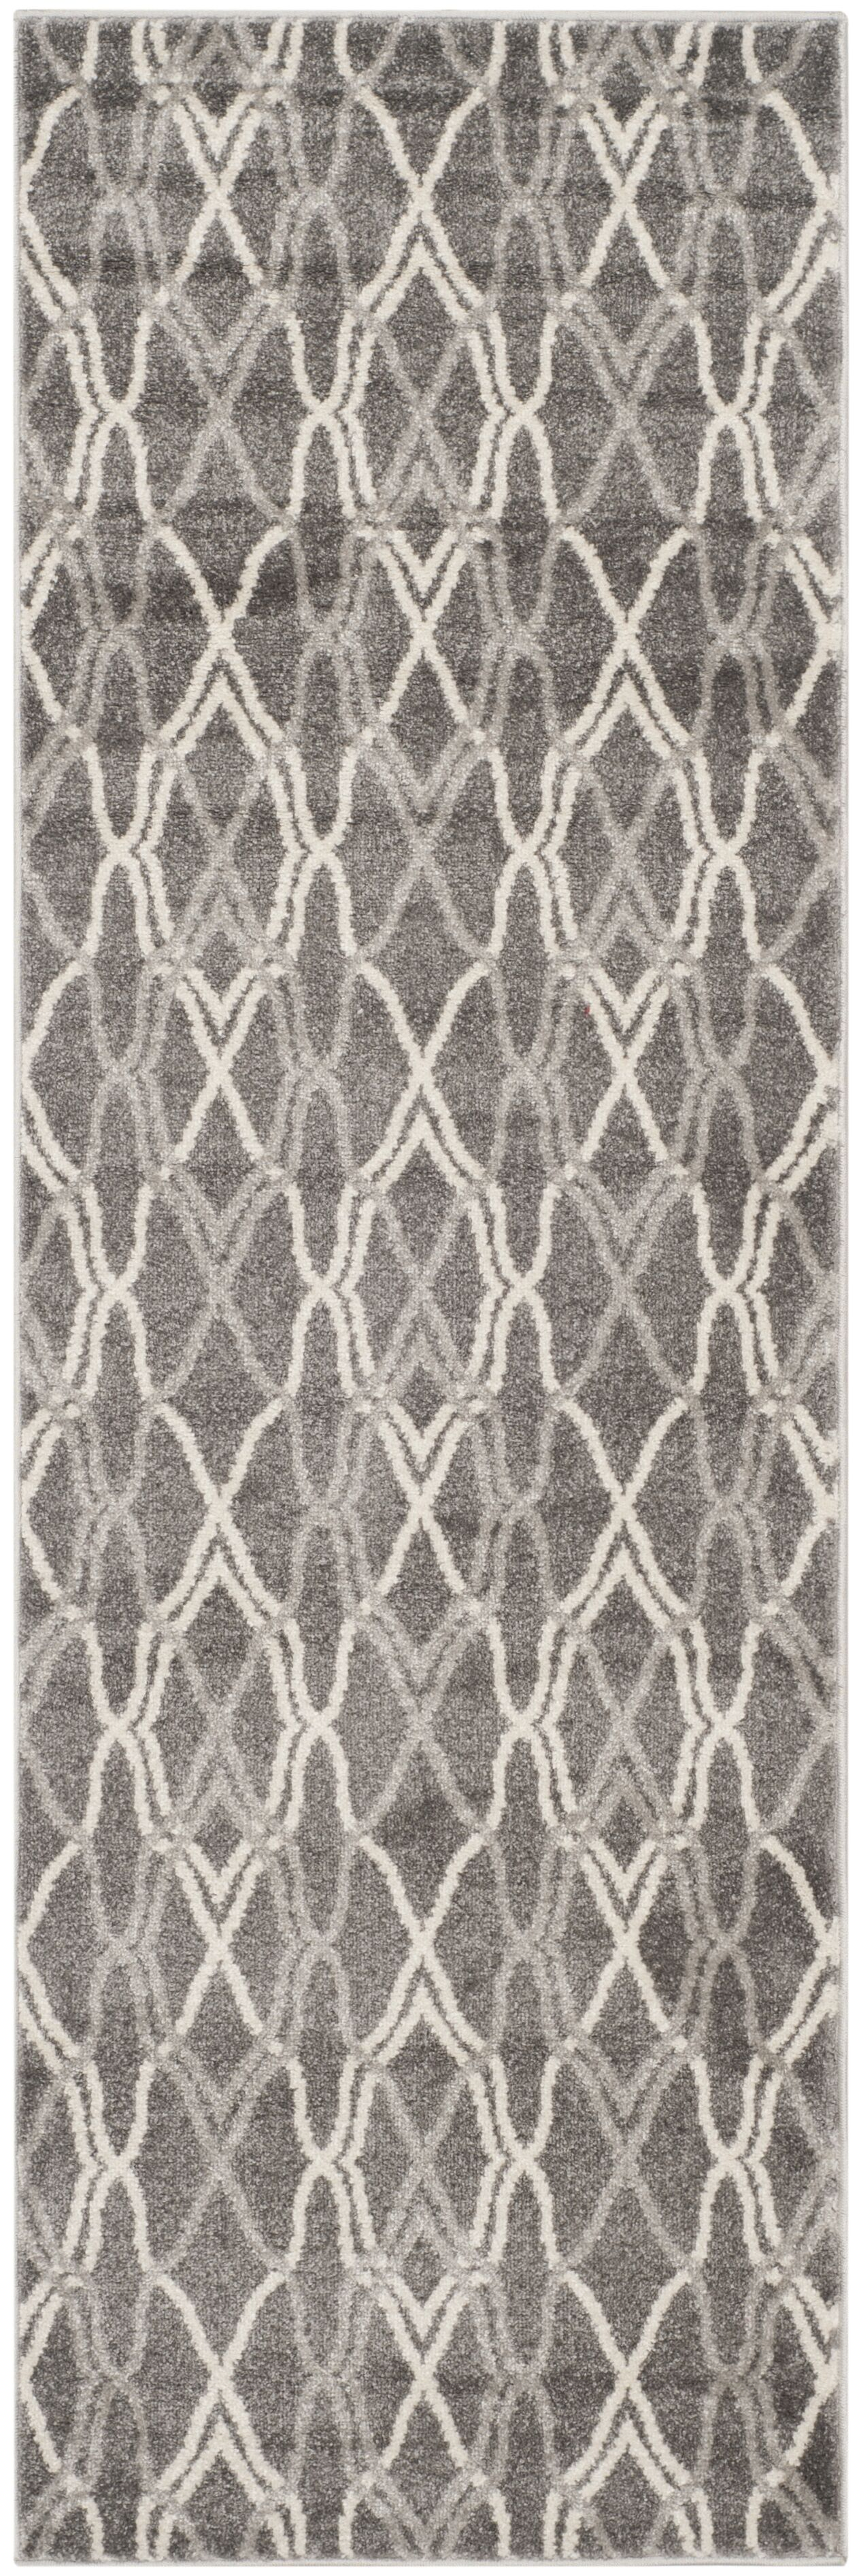 Ajax Grey/Light Grey Outdoor Area Rug Rug Size: Runner 2'3